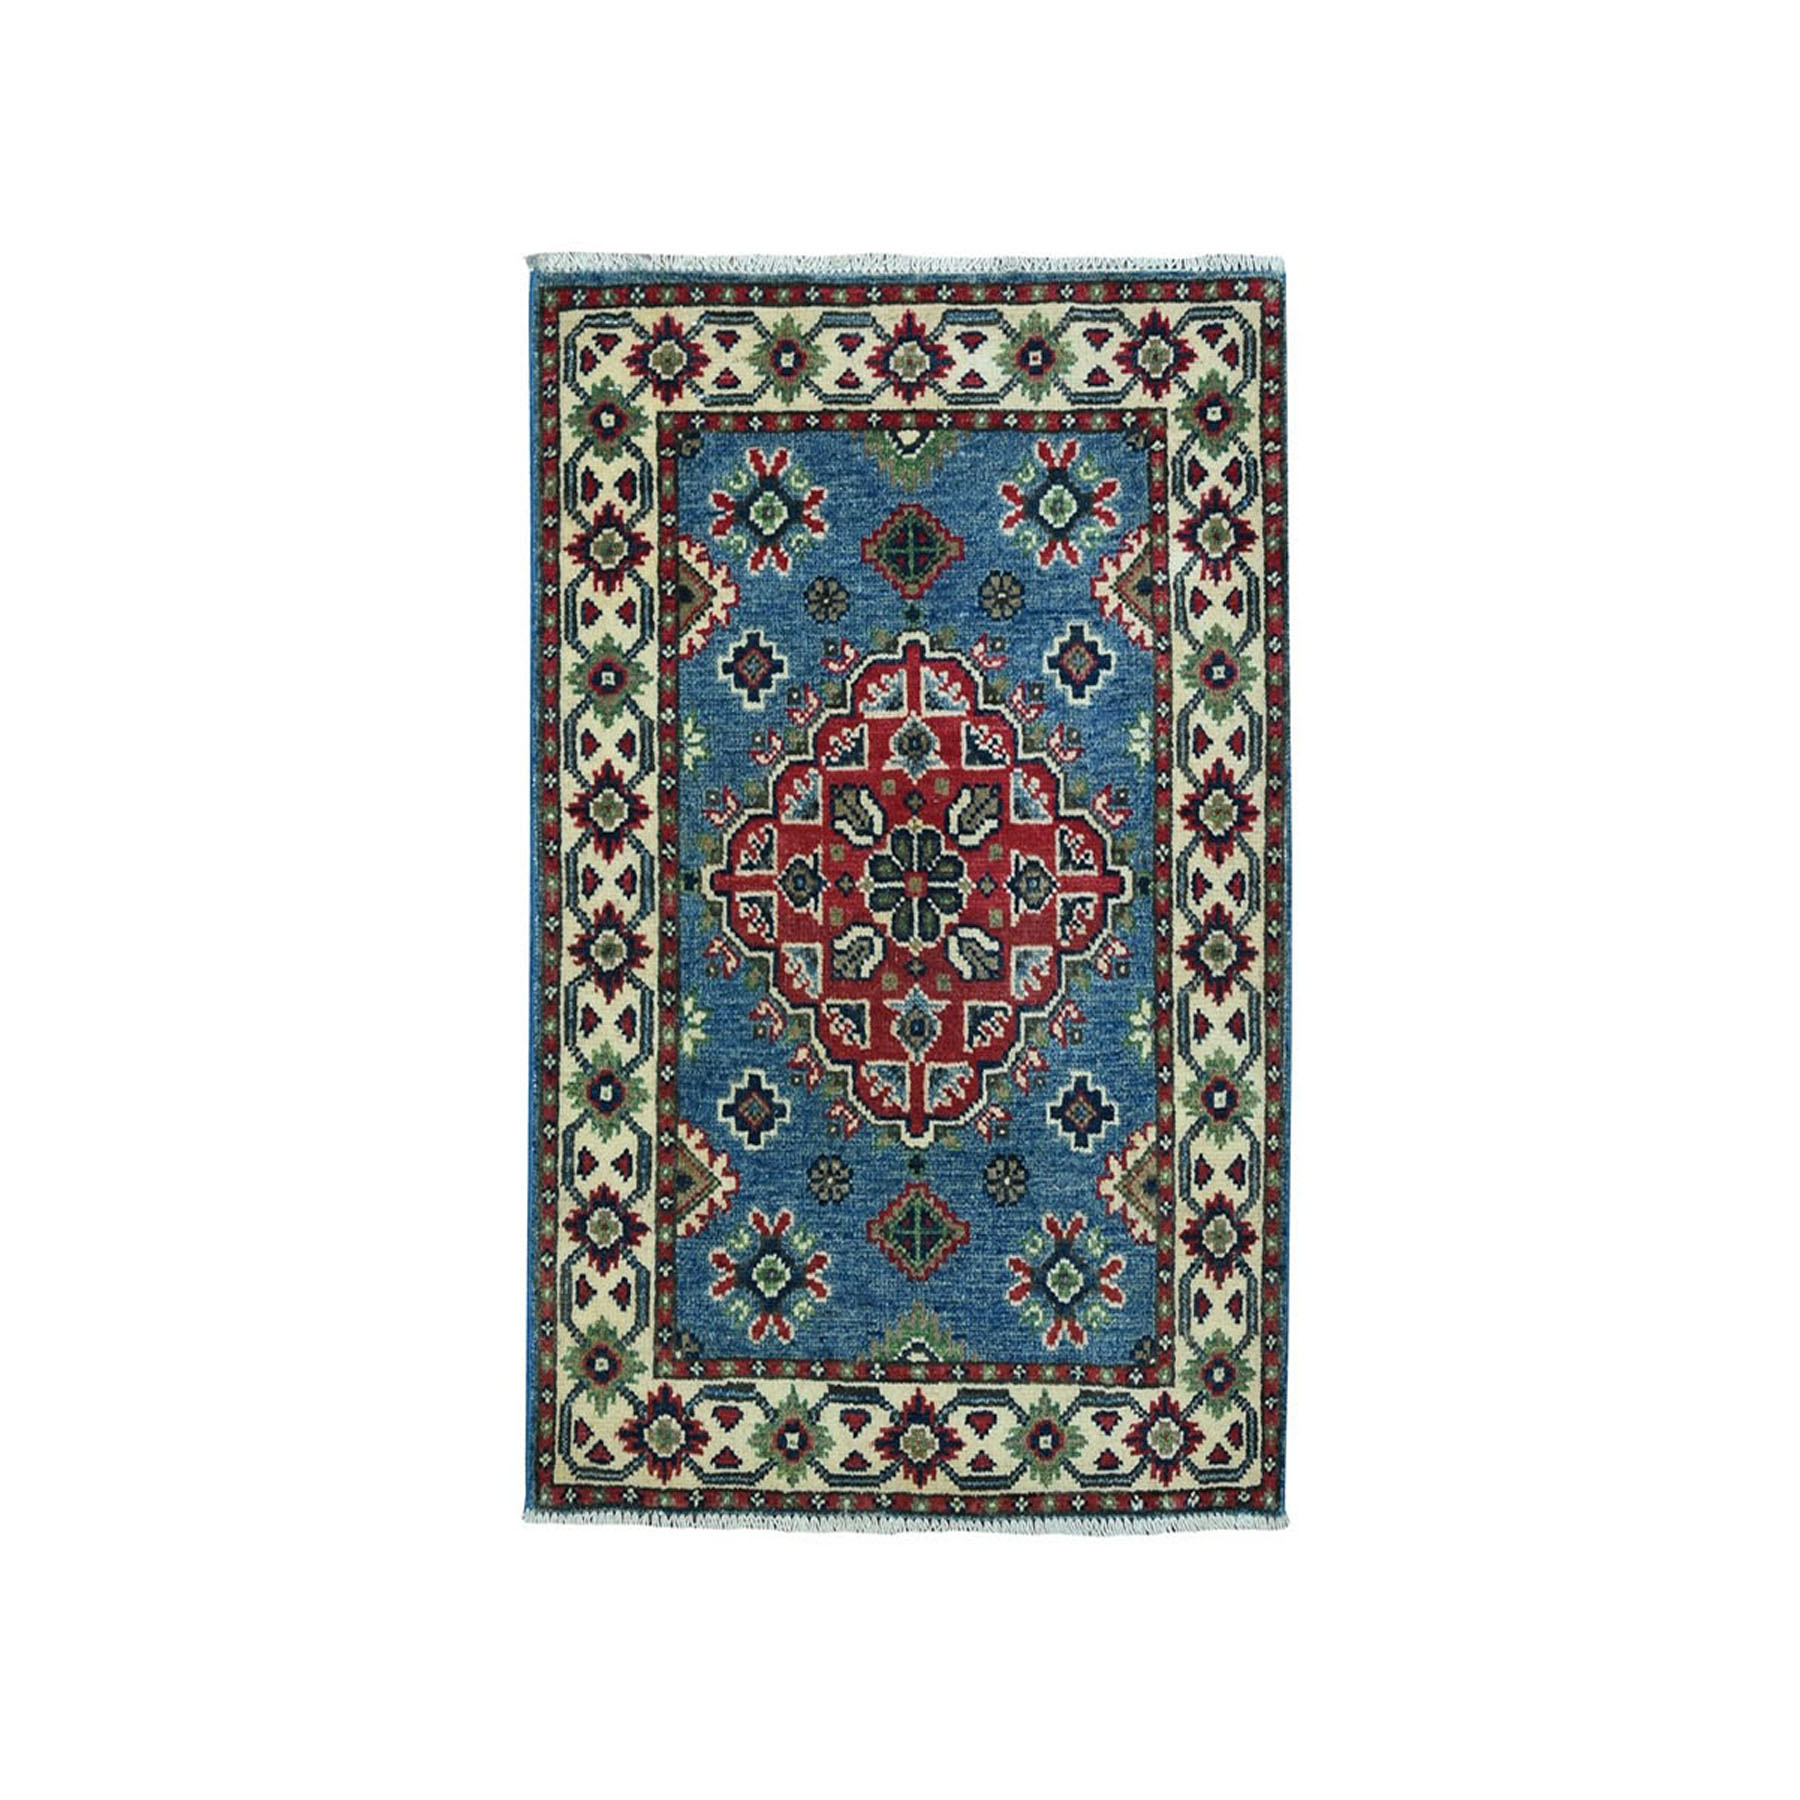 "2'X2'10"" Blue Geometric Design Kazak Pure Wool Hand-Knotted Oriental Rug moaea0ca"